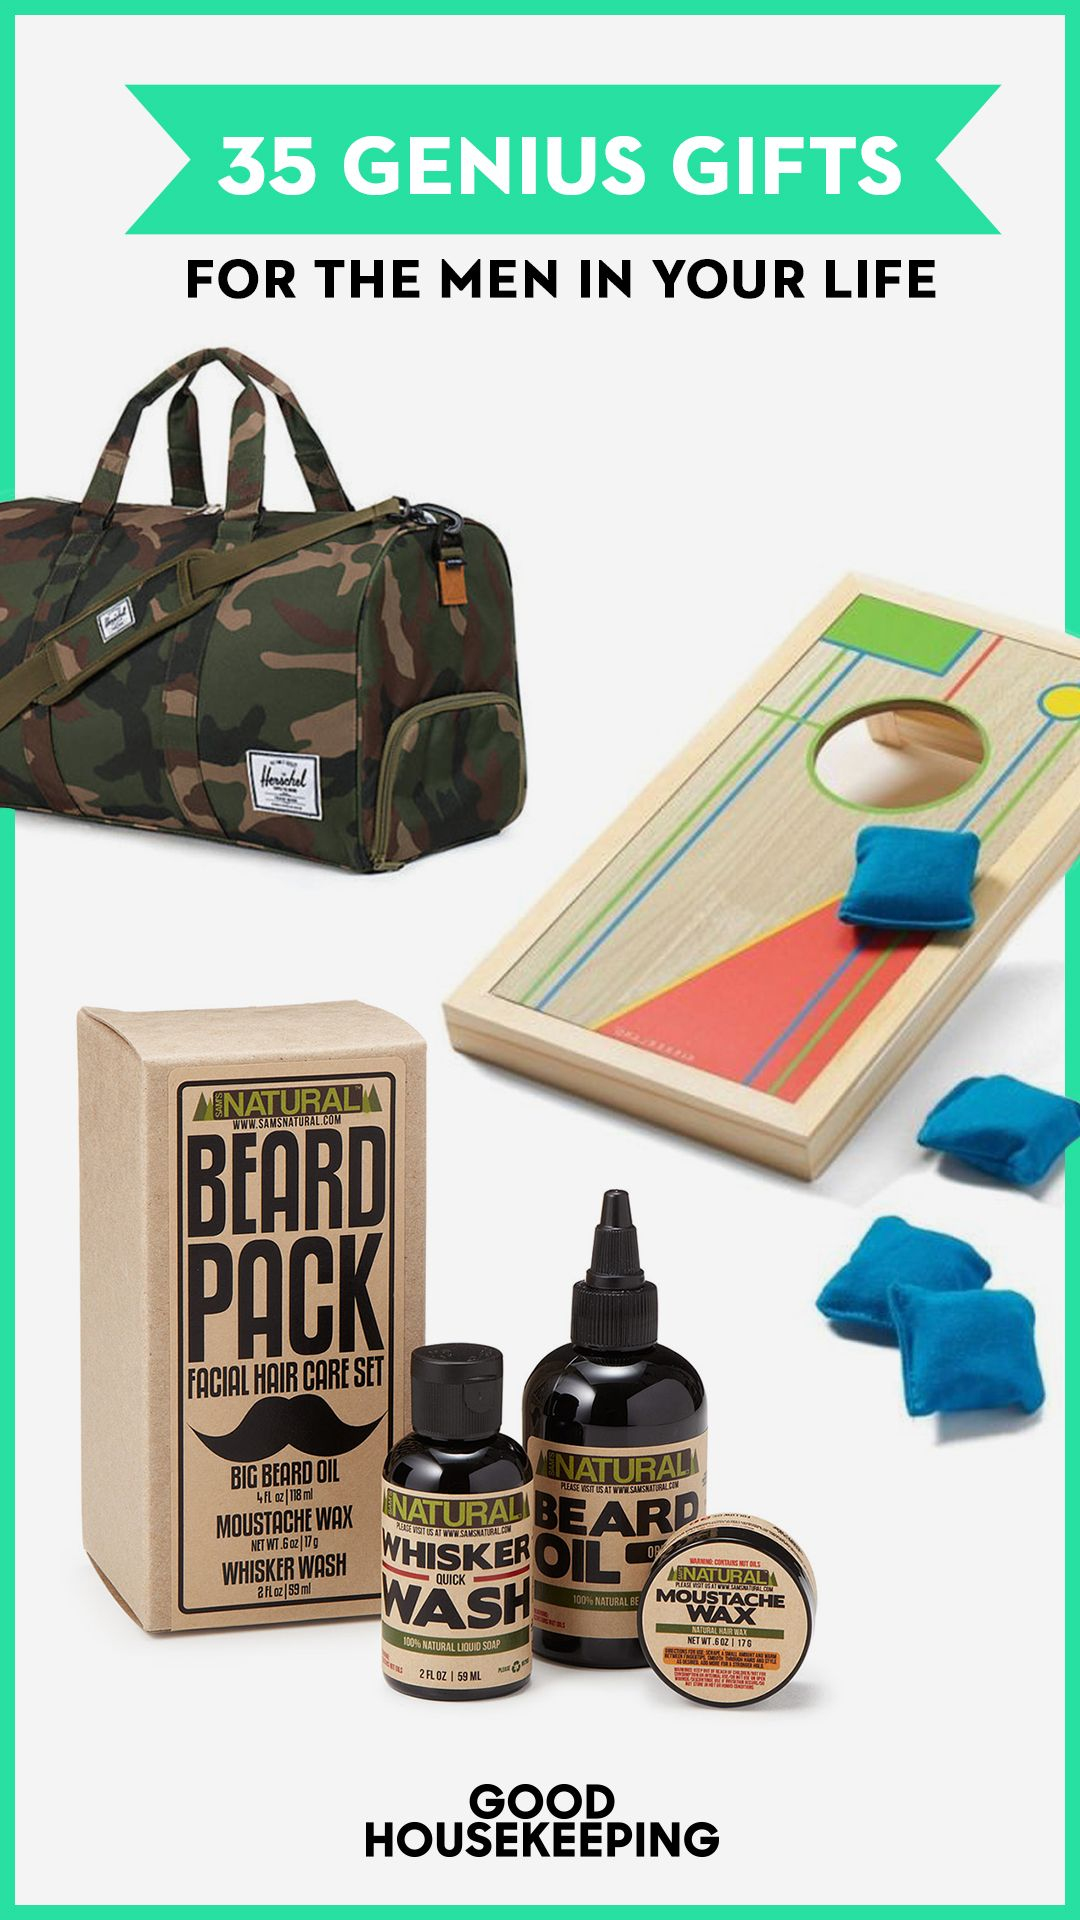 55 genius gifts for the guys on your list